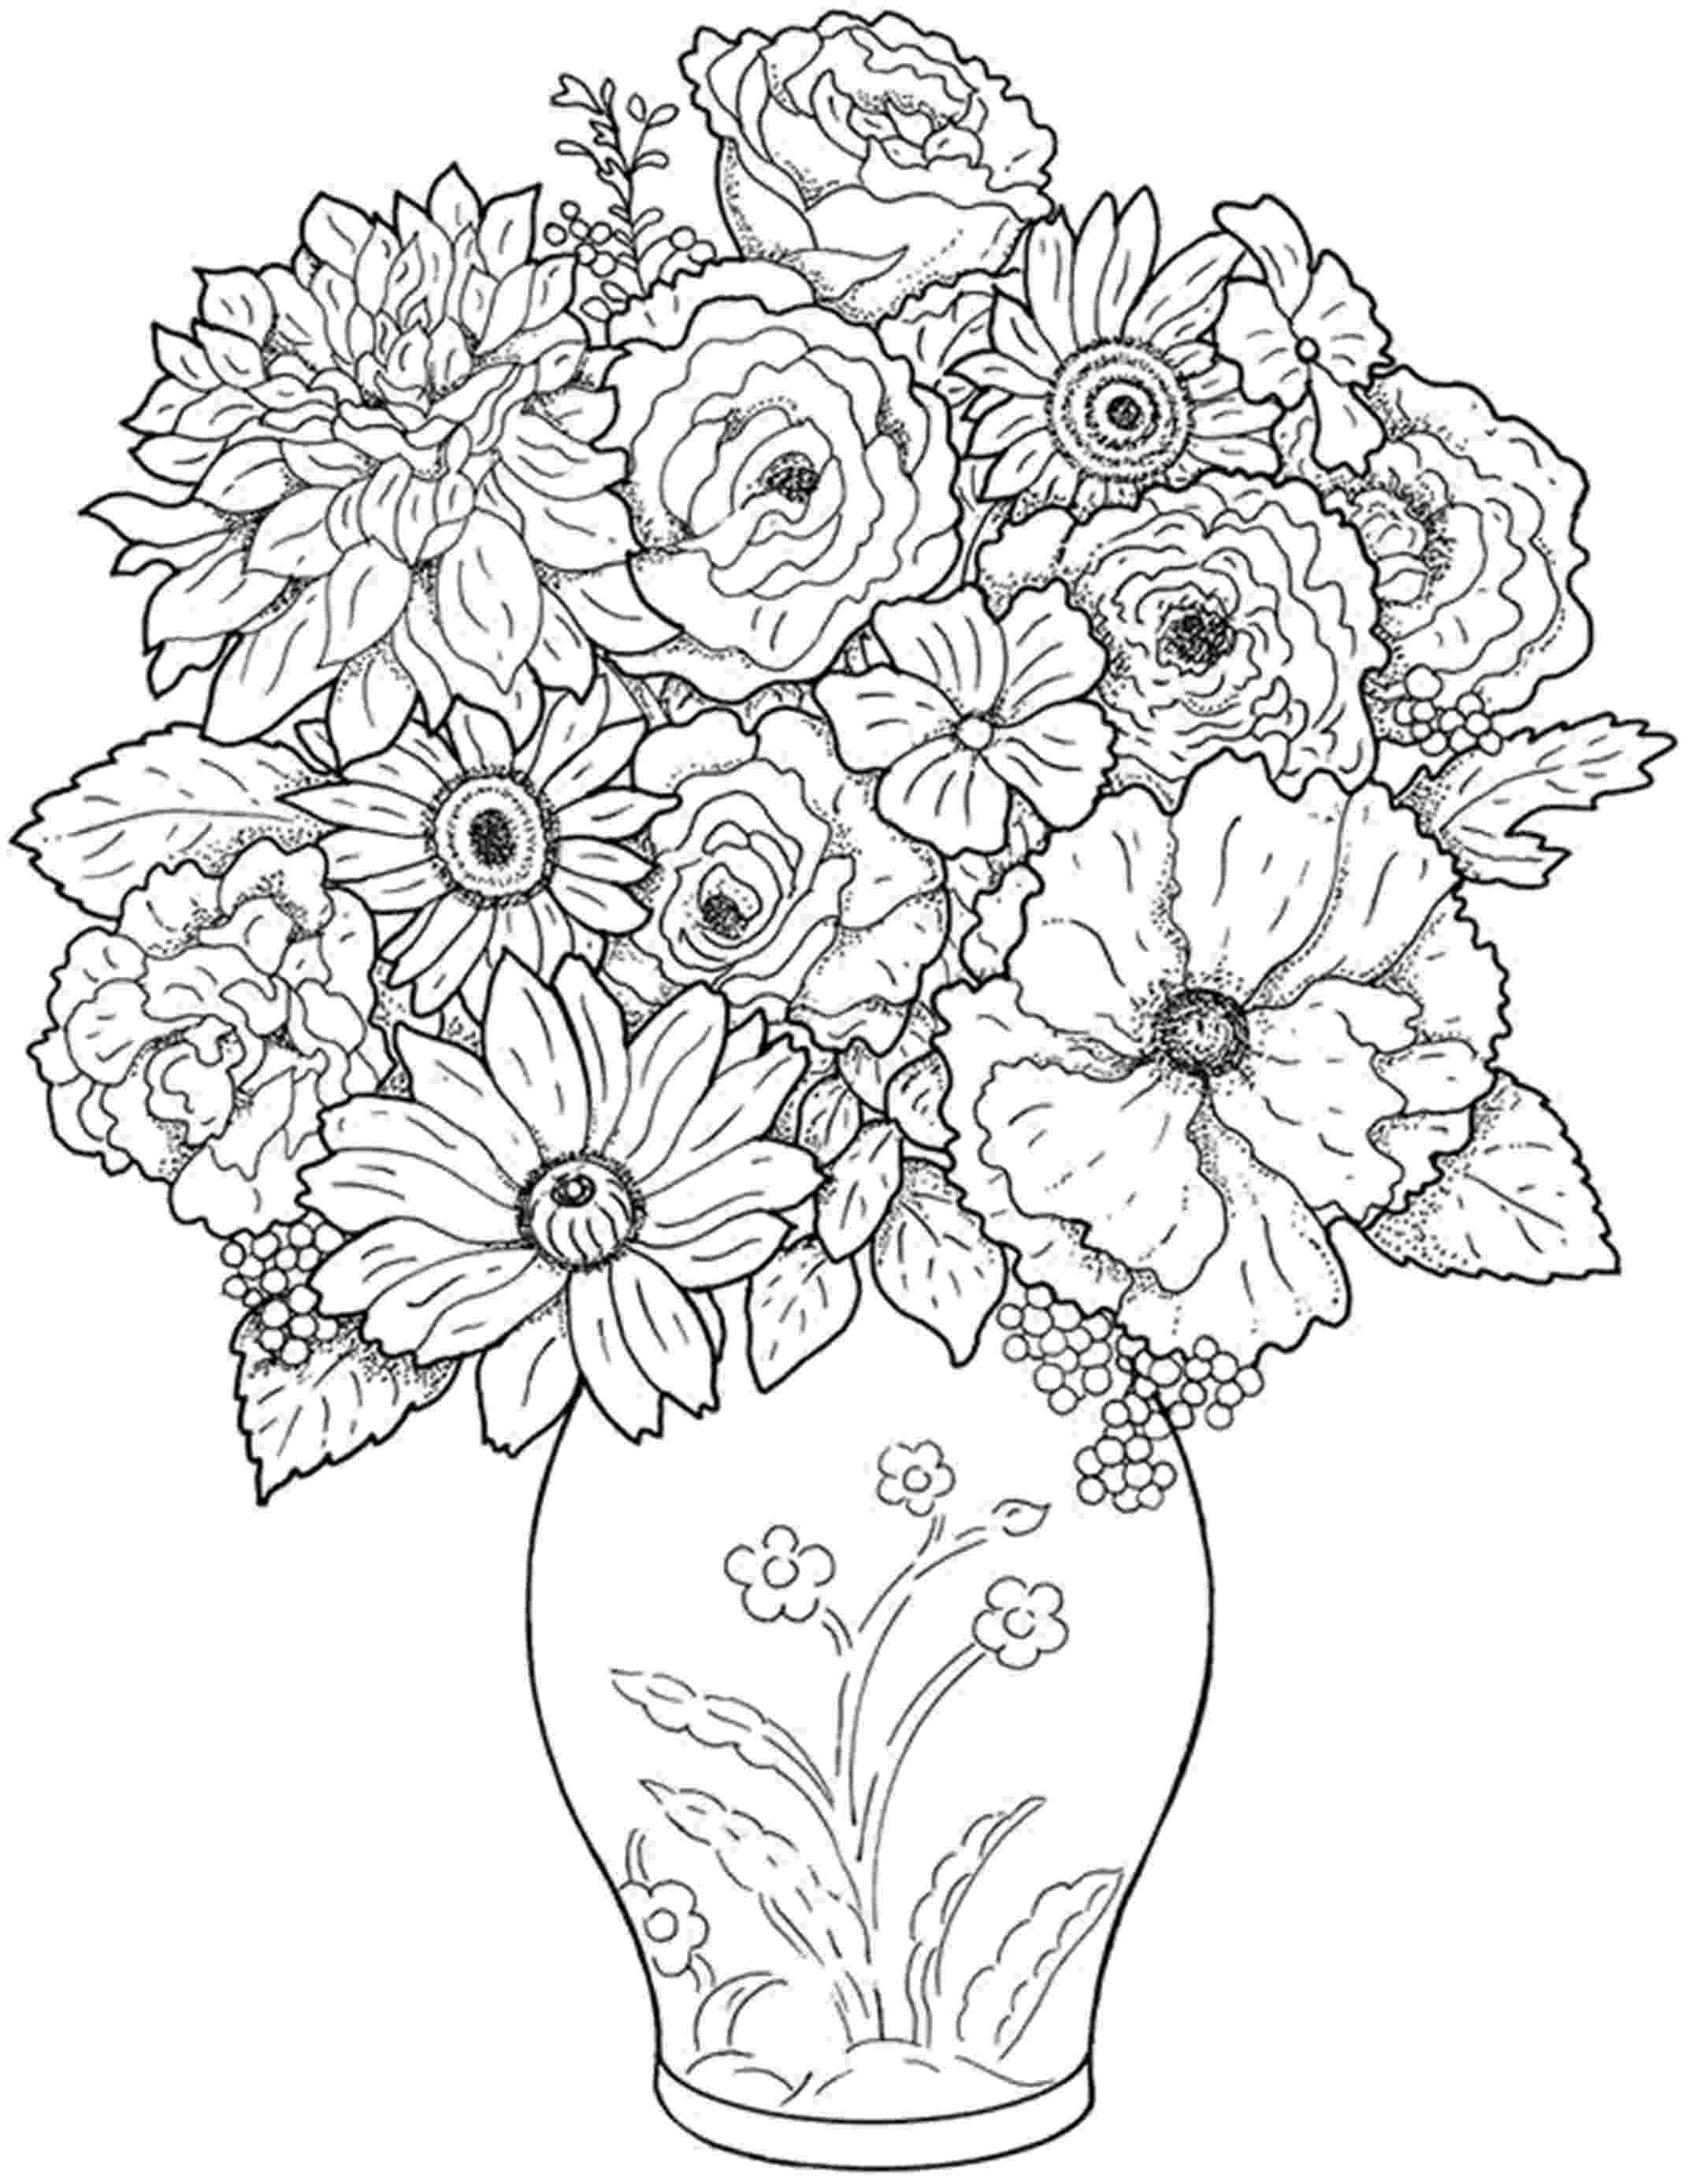 picture of flower for colouring free printable flower coloring pages for kids best colouring for picture of flower